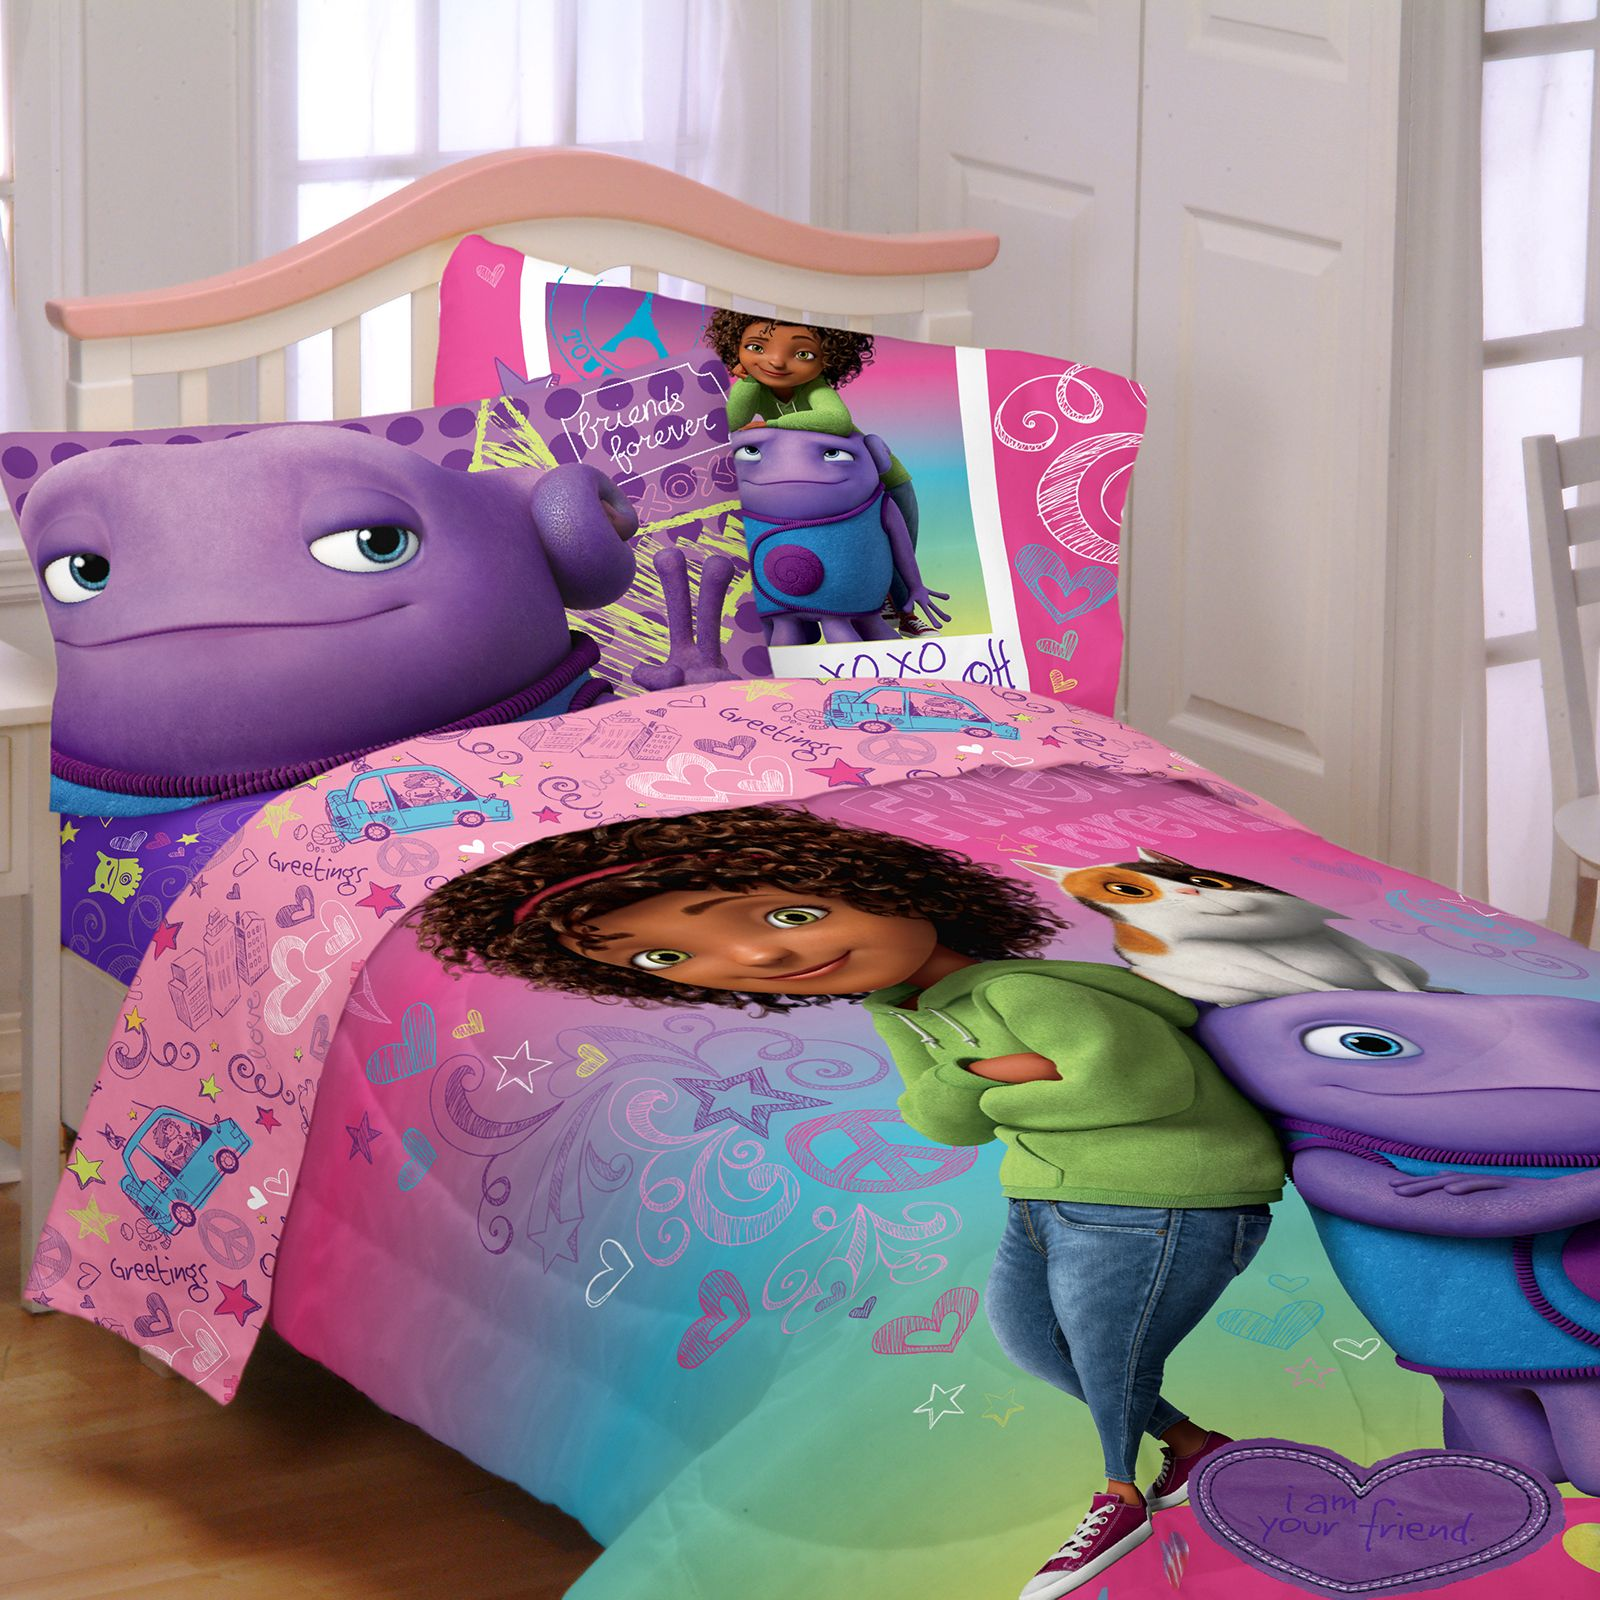 New Bedding Featuring Tip, Oh And Pig From The Dreamworks